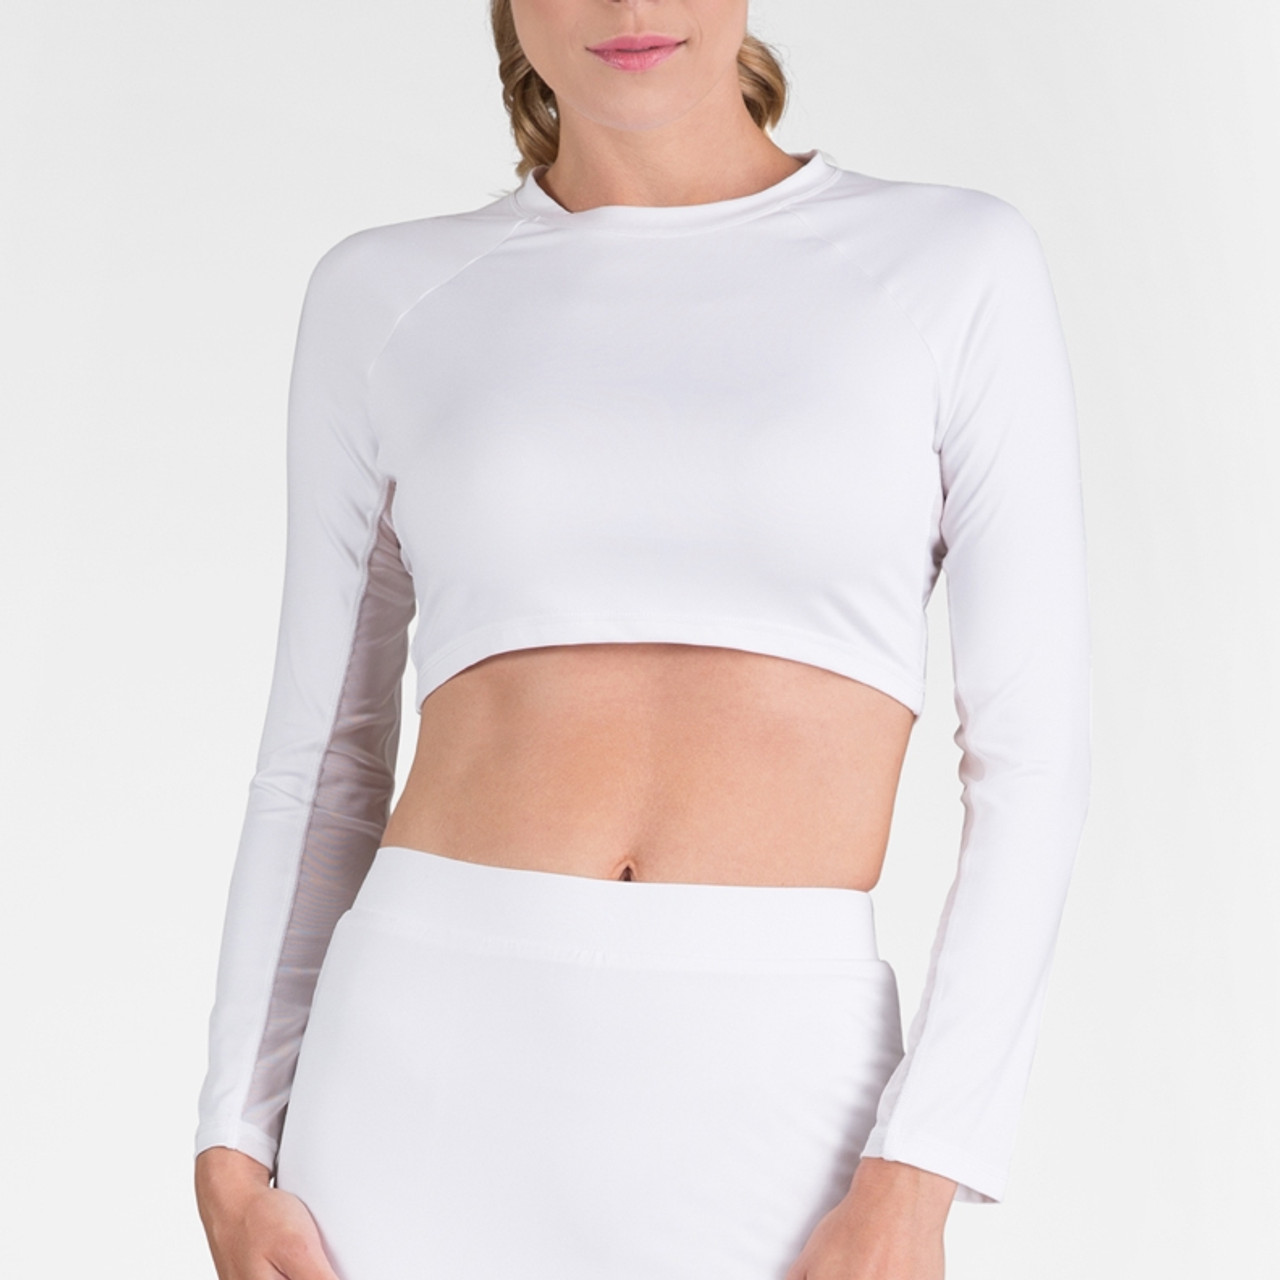 edf5e5214 Tail Sasha Cropped Long Sleeve Top - White